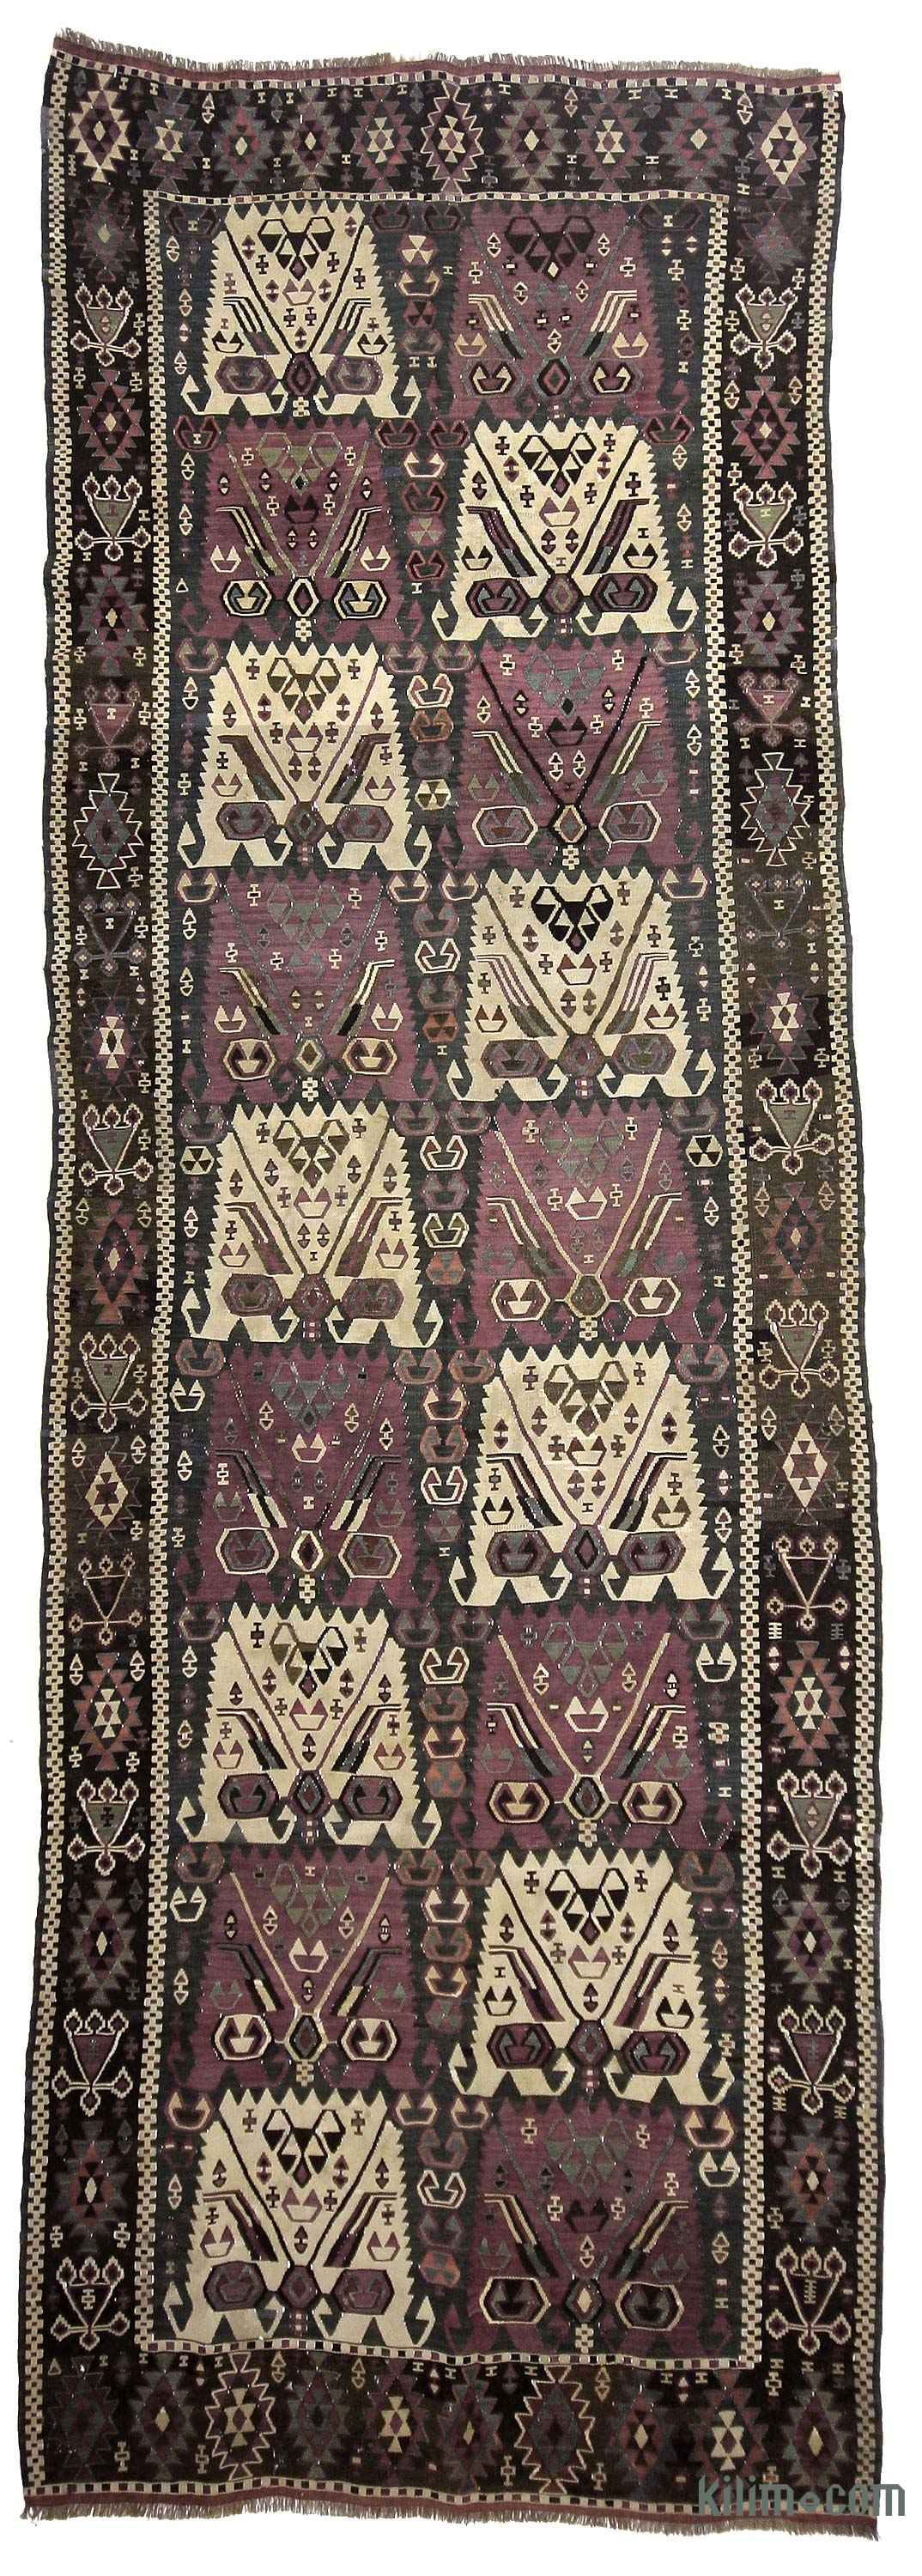 K0020927 Purple Antique Kagizman Kilim Rug